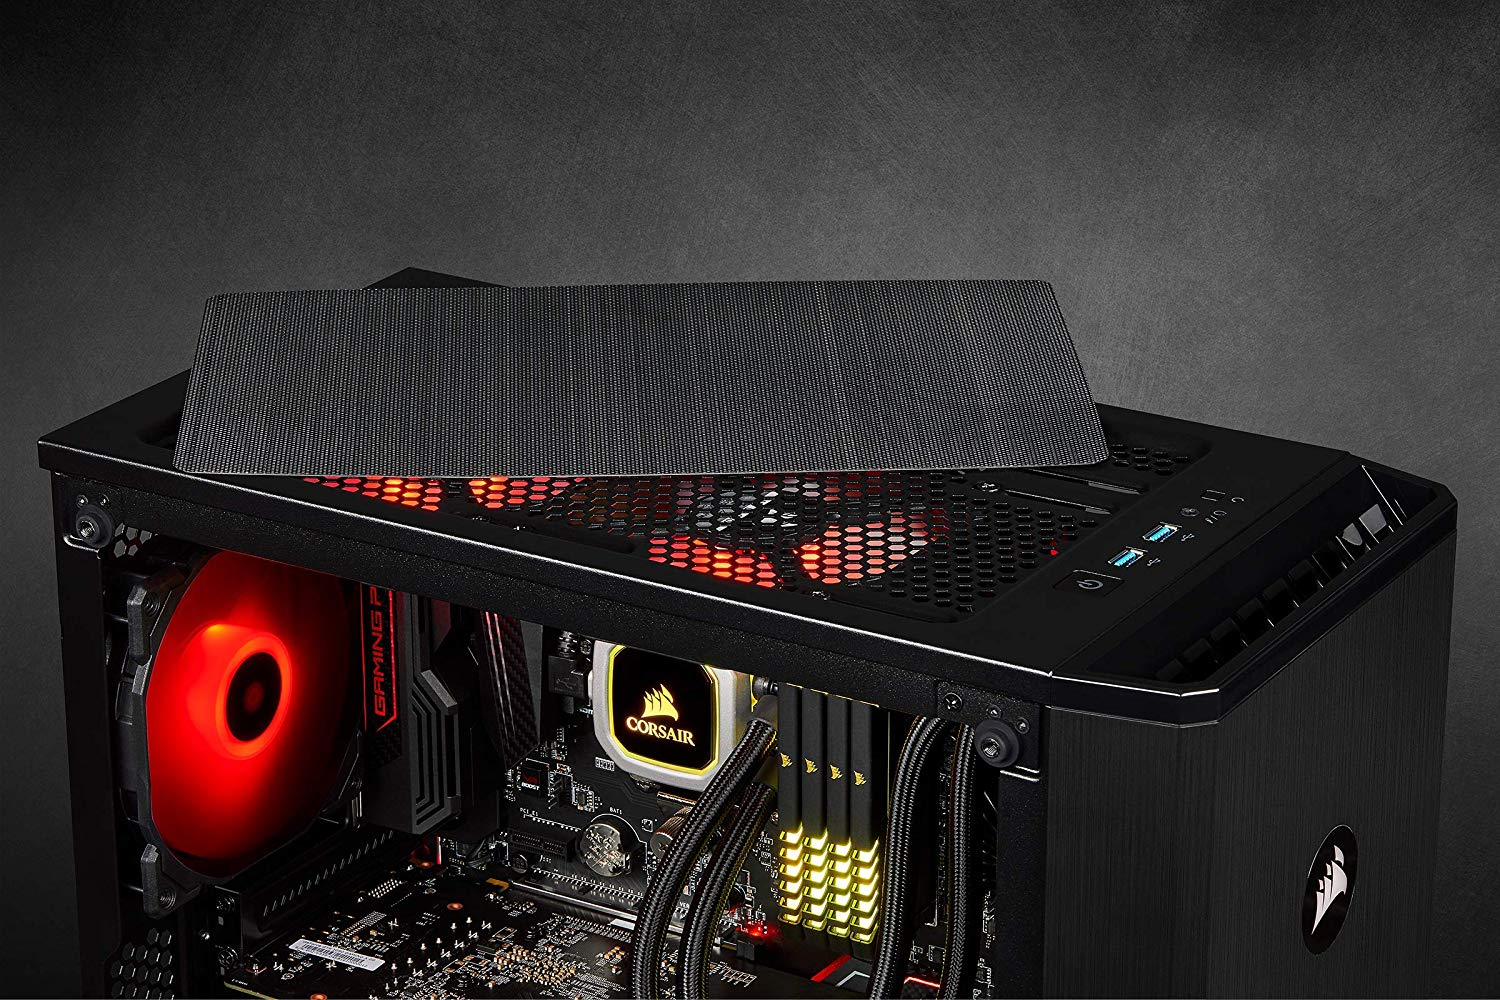 Space might feel a bit cramped for some high end hardware Corsair Carbide Series 175R PC Case Review